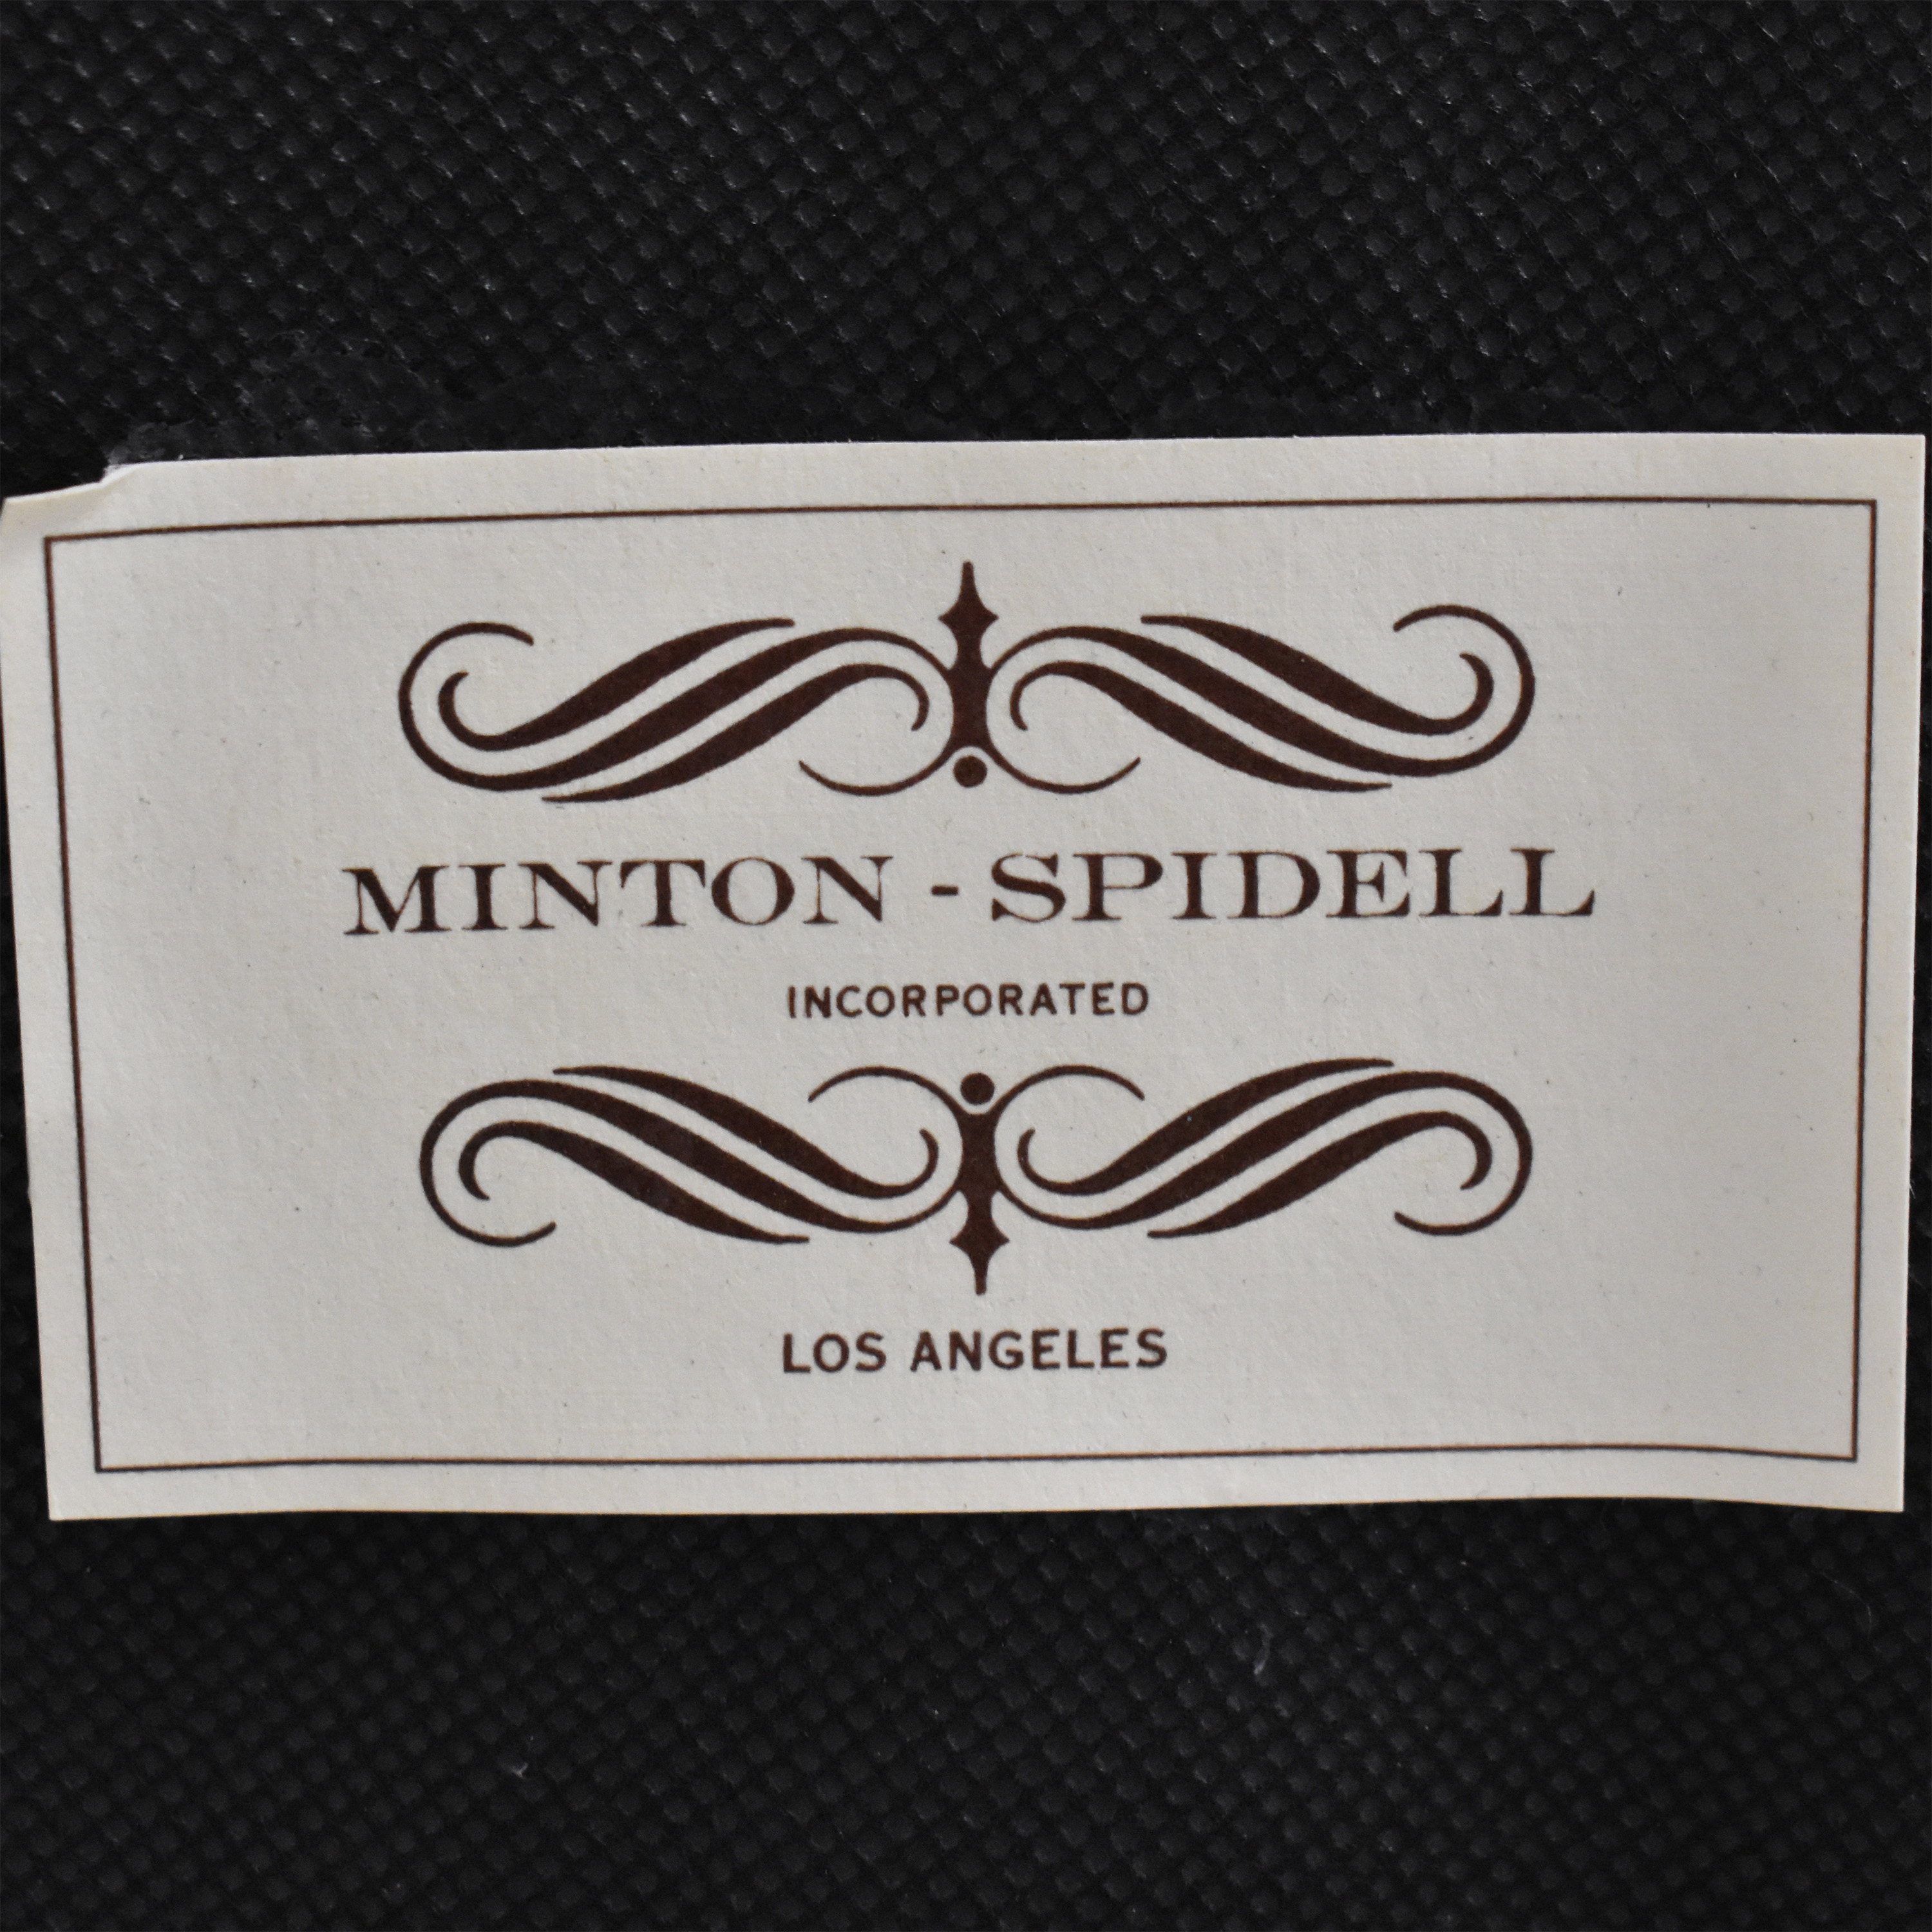 Minton-Spidell Minton-Spidell Regence Dining Side Chairs coupon